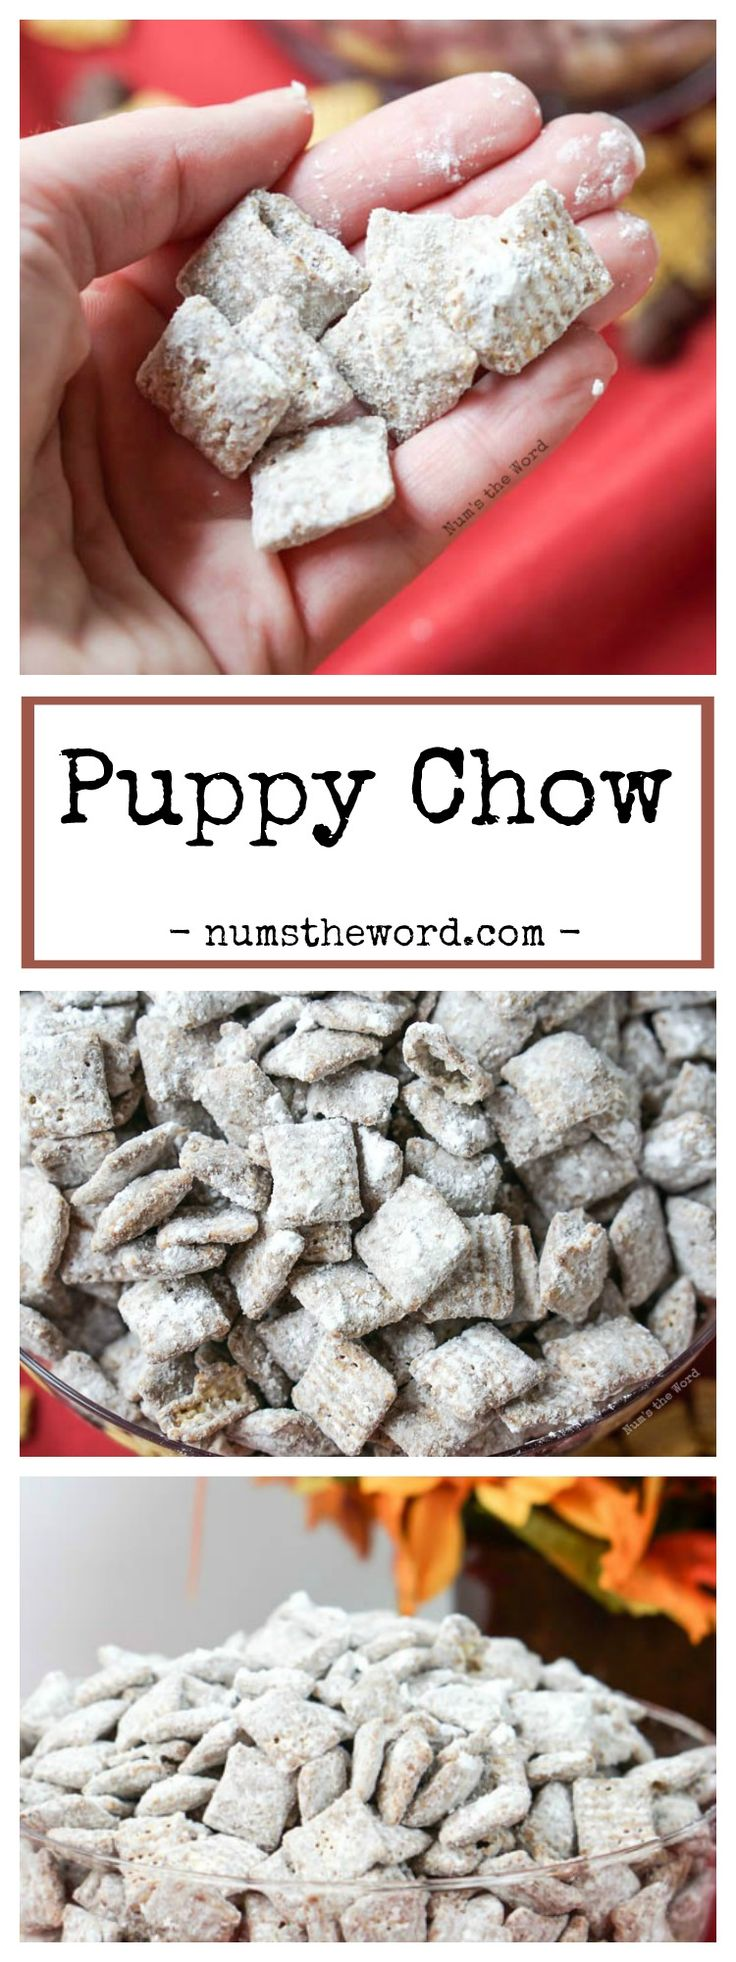 People Puppy Chow Mix.  Kid friendly and makes great gifts!